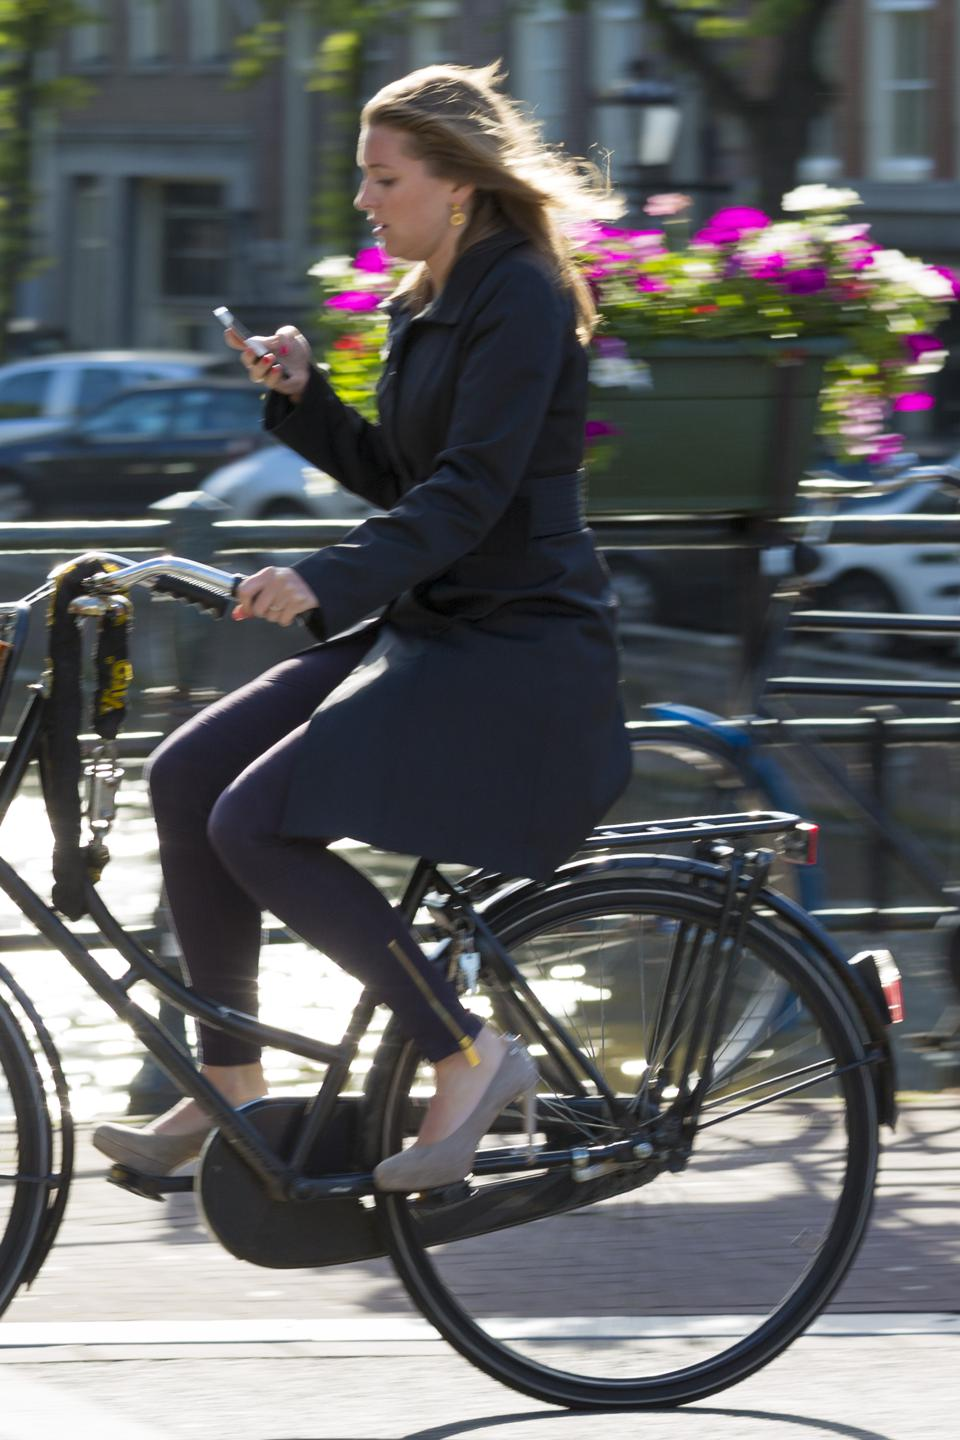 Woman texting while on moving bicycle